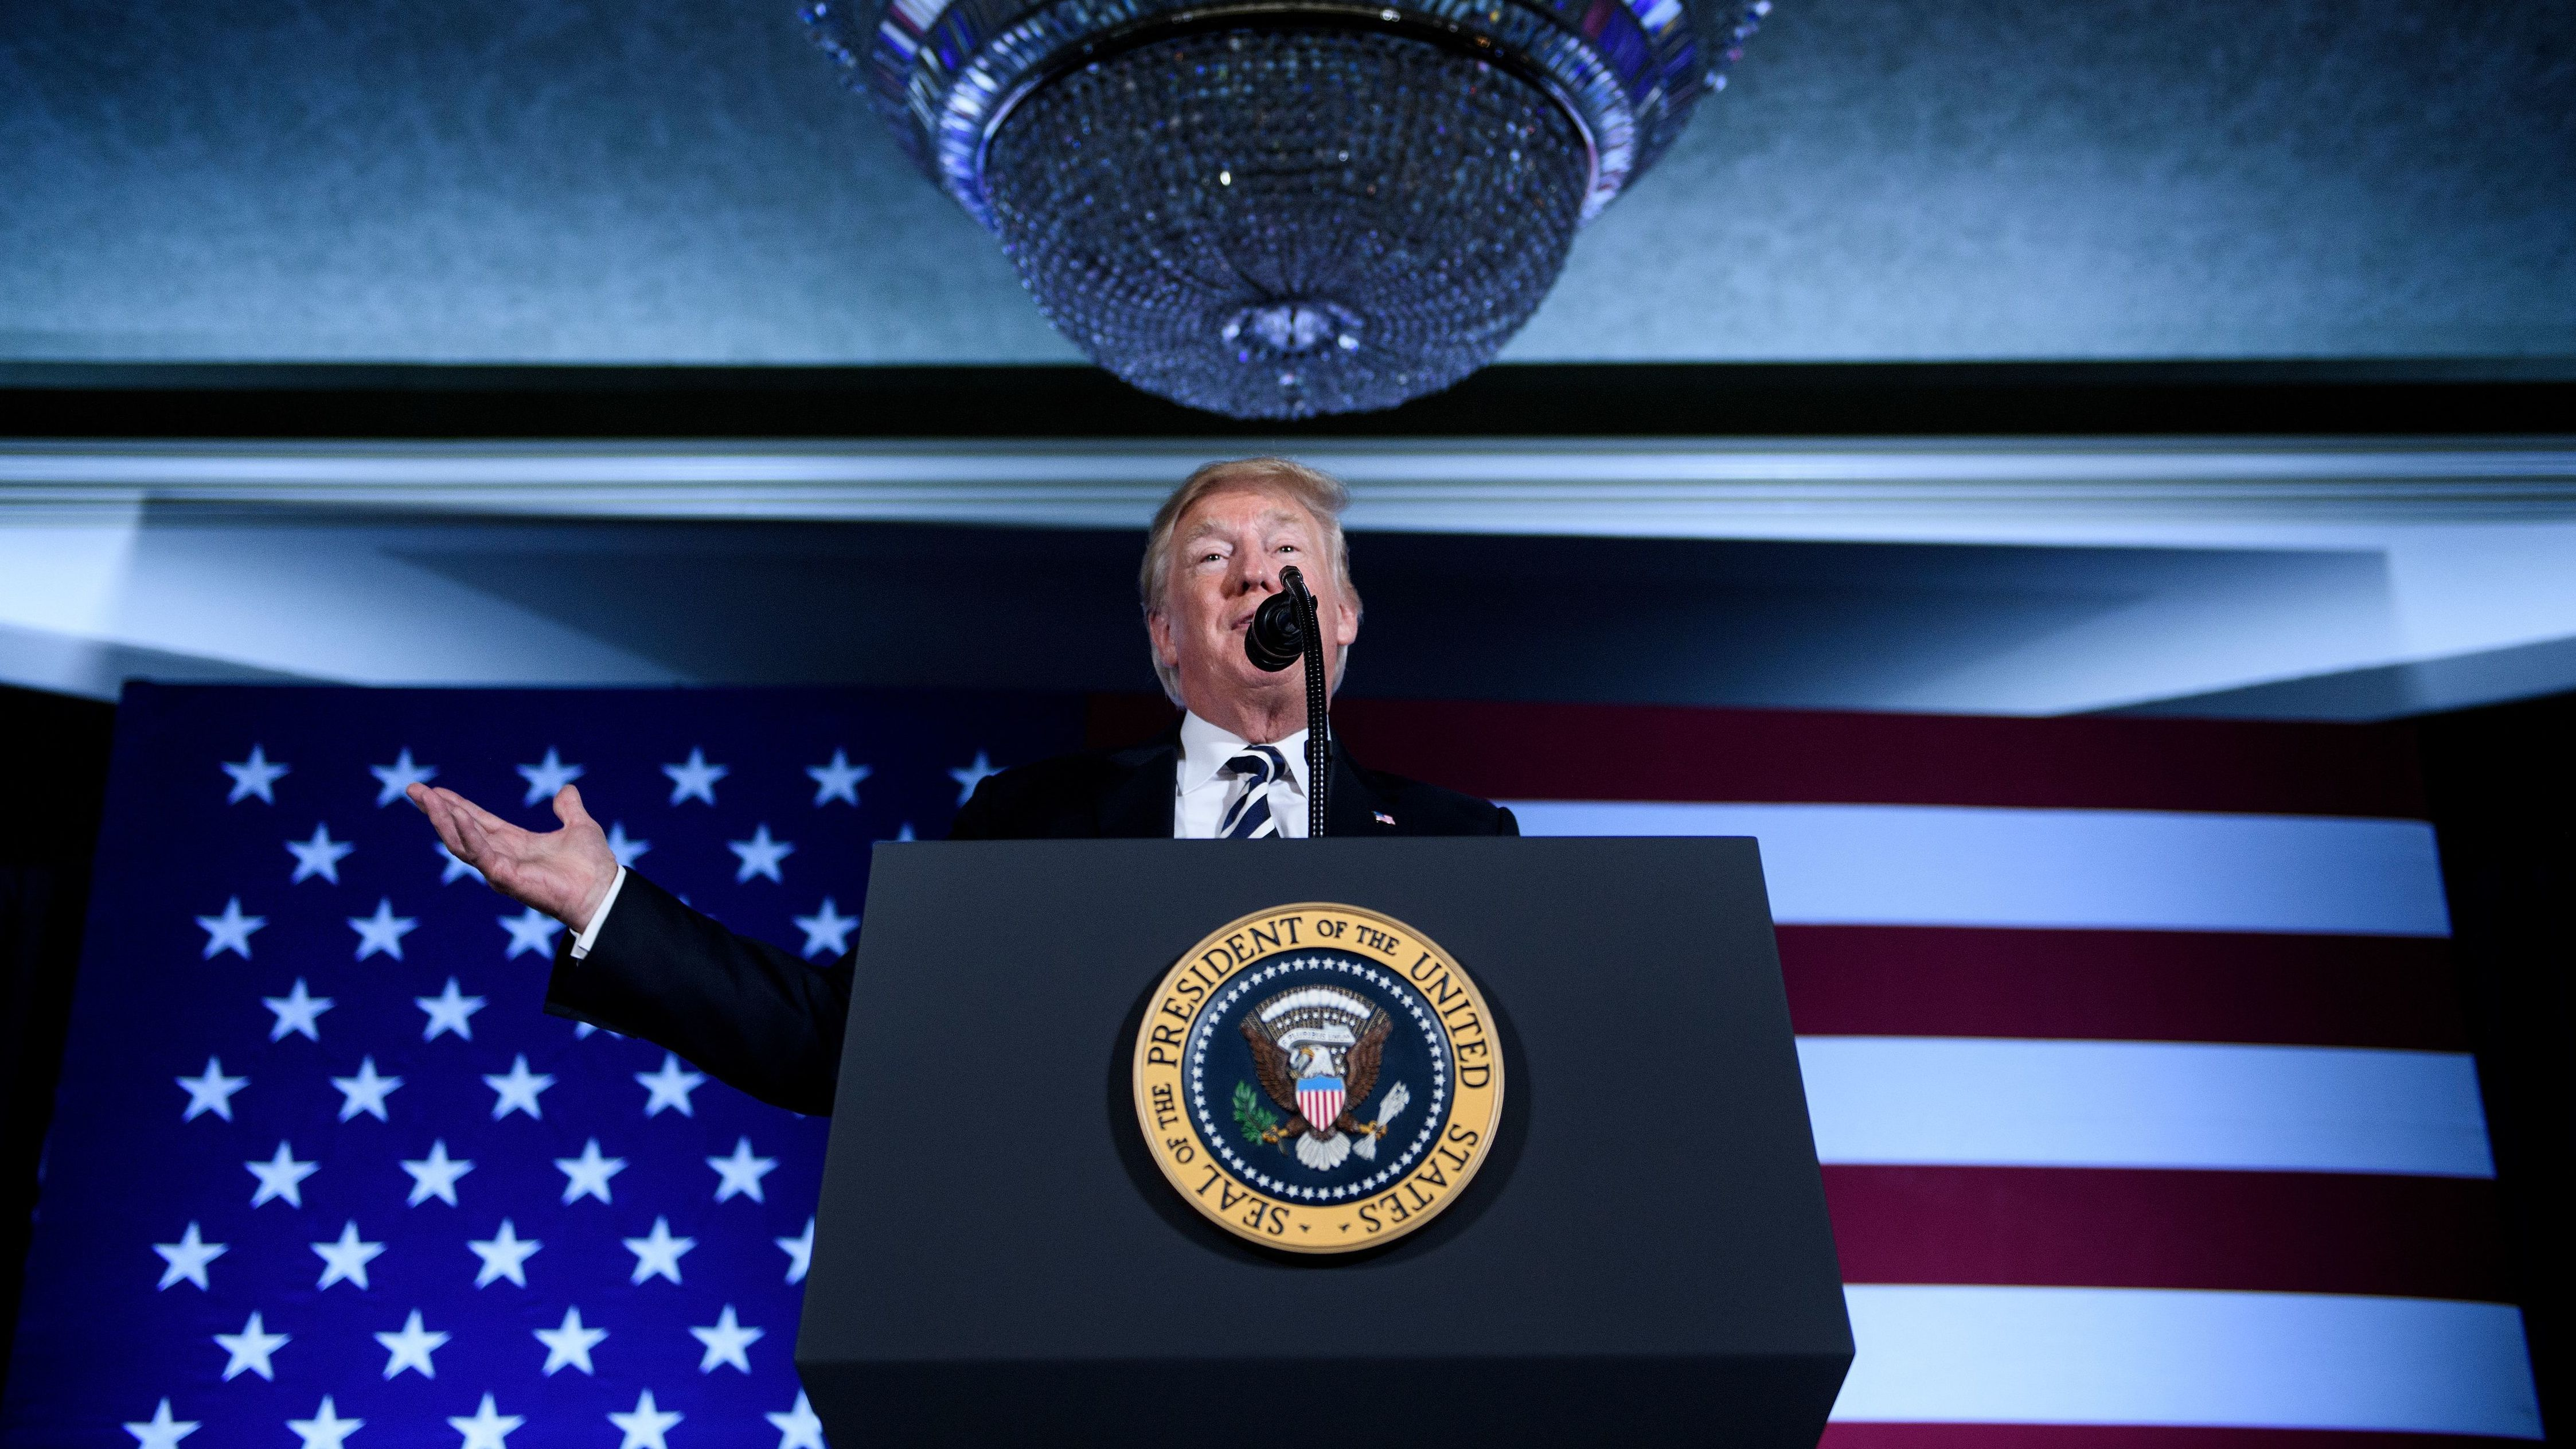 President Donald Trump speaks during an August 2018 fundraiser in Charlotte, N.C. As president, Trump has embraced high dollar fundraising events that he criticized while running for office.